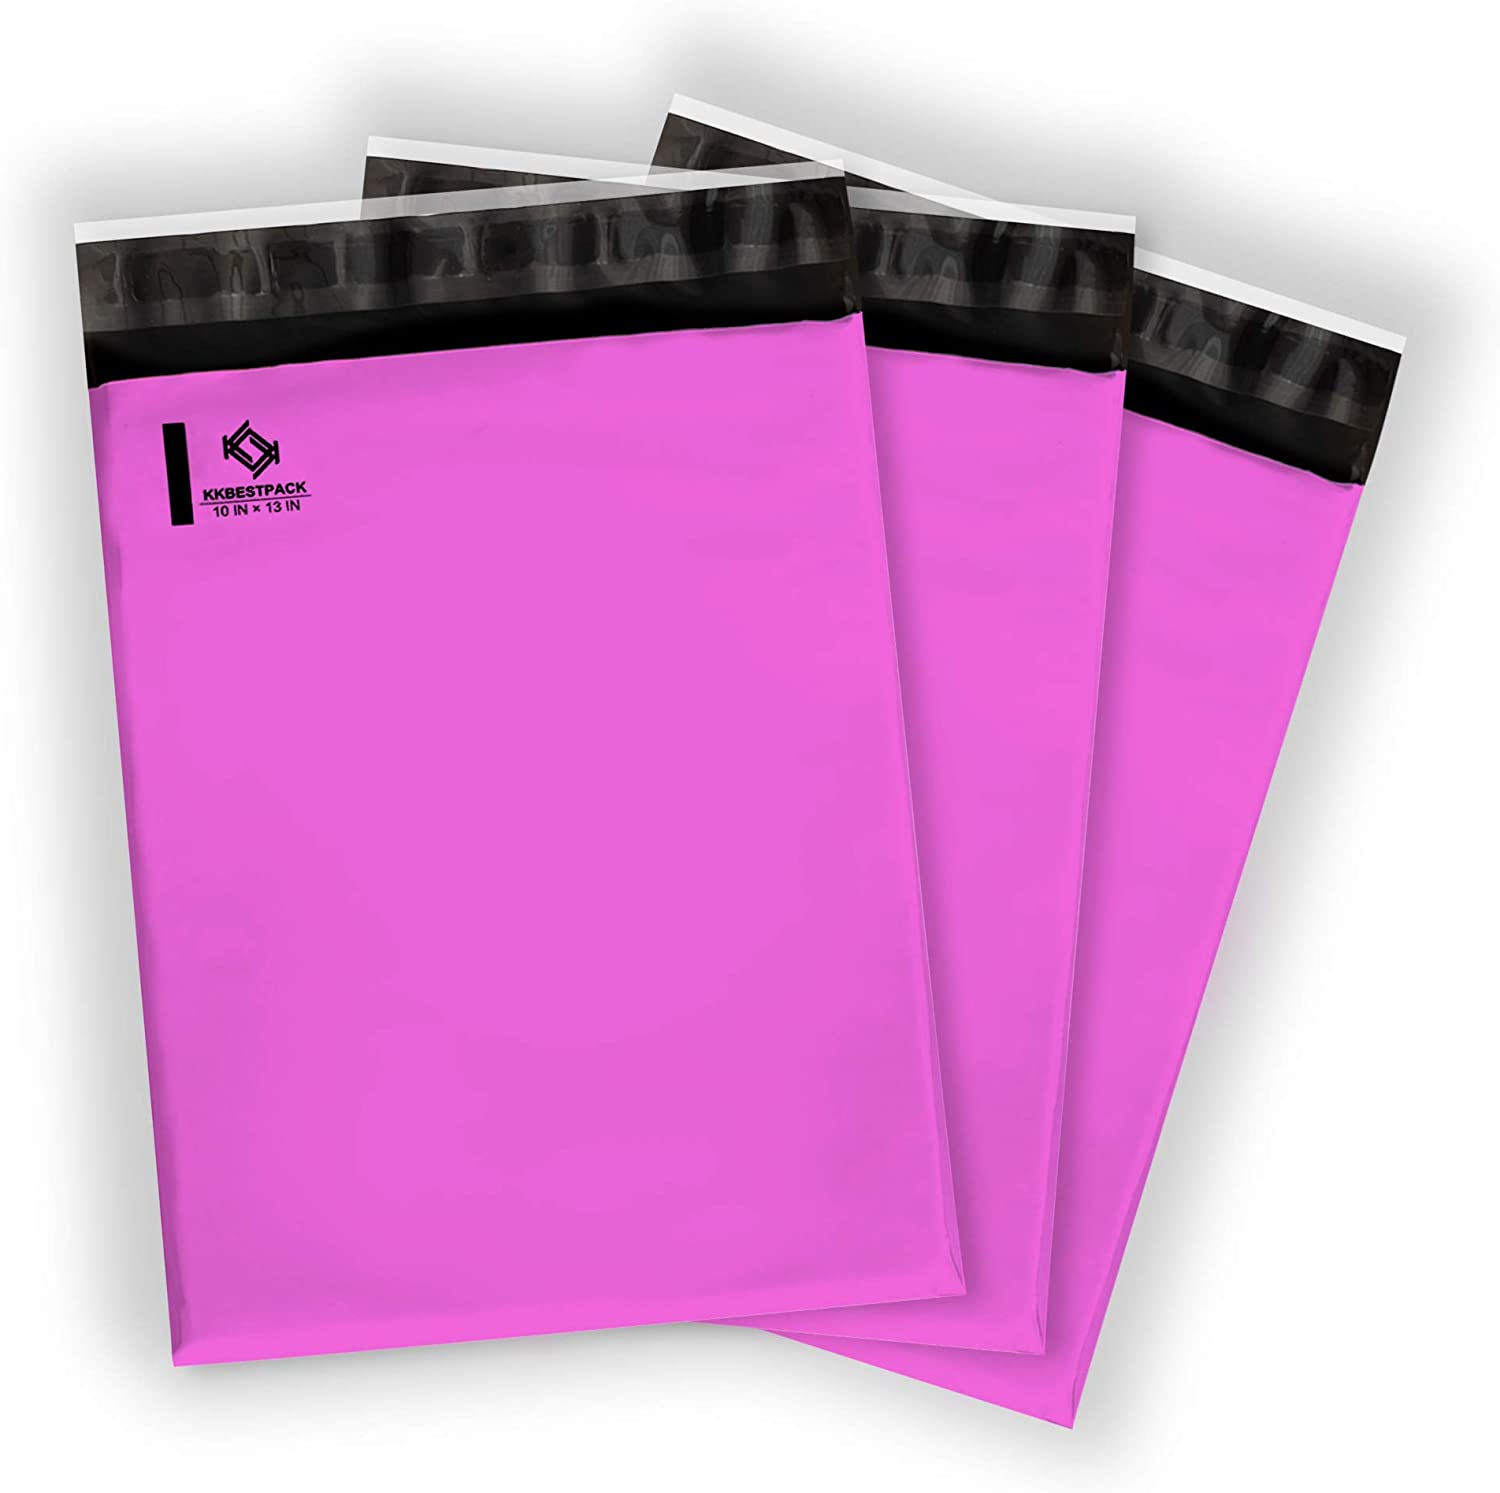 KKBESTPACK Poly Mailers Envelopes Shipping Max 49% Spasm price OFF Self Sealing